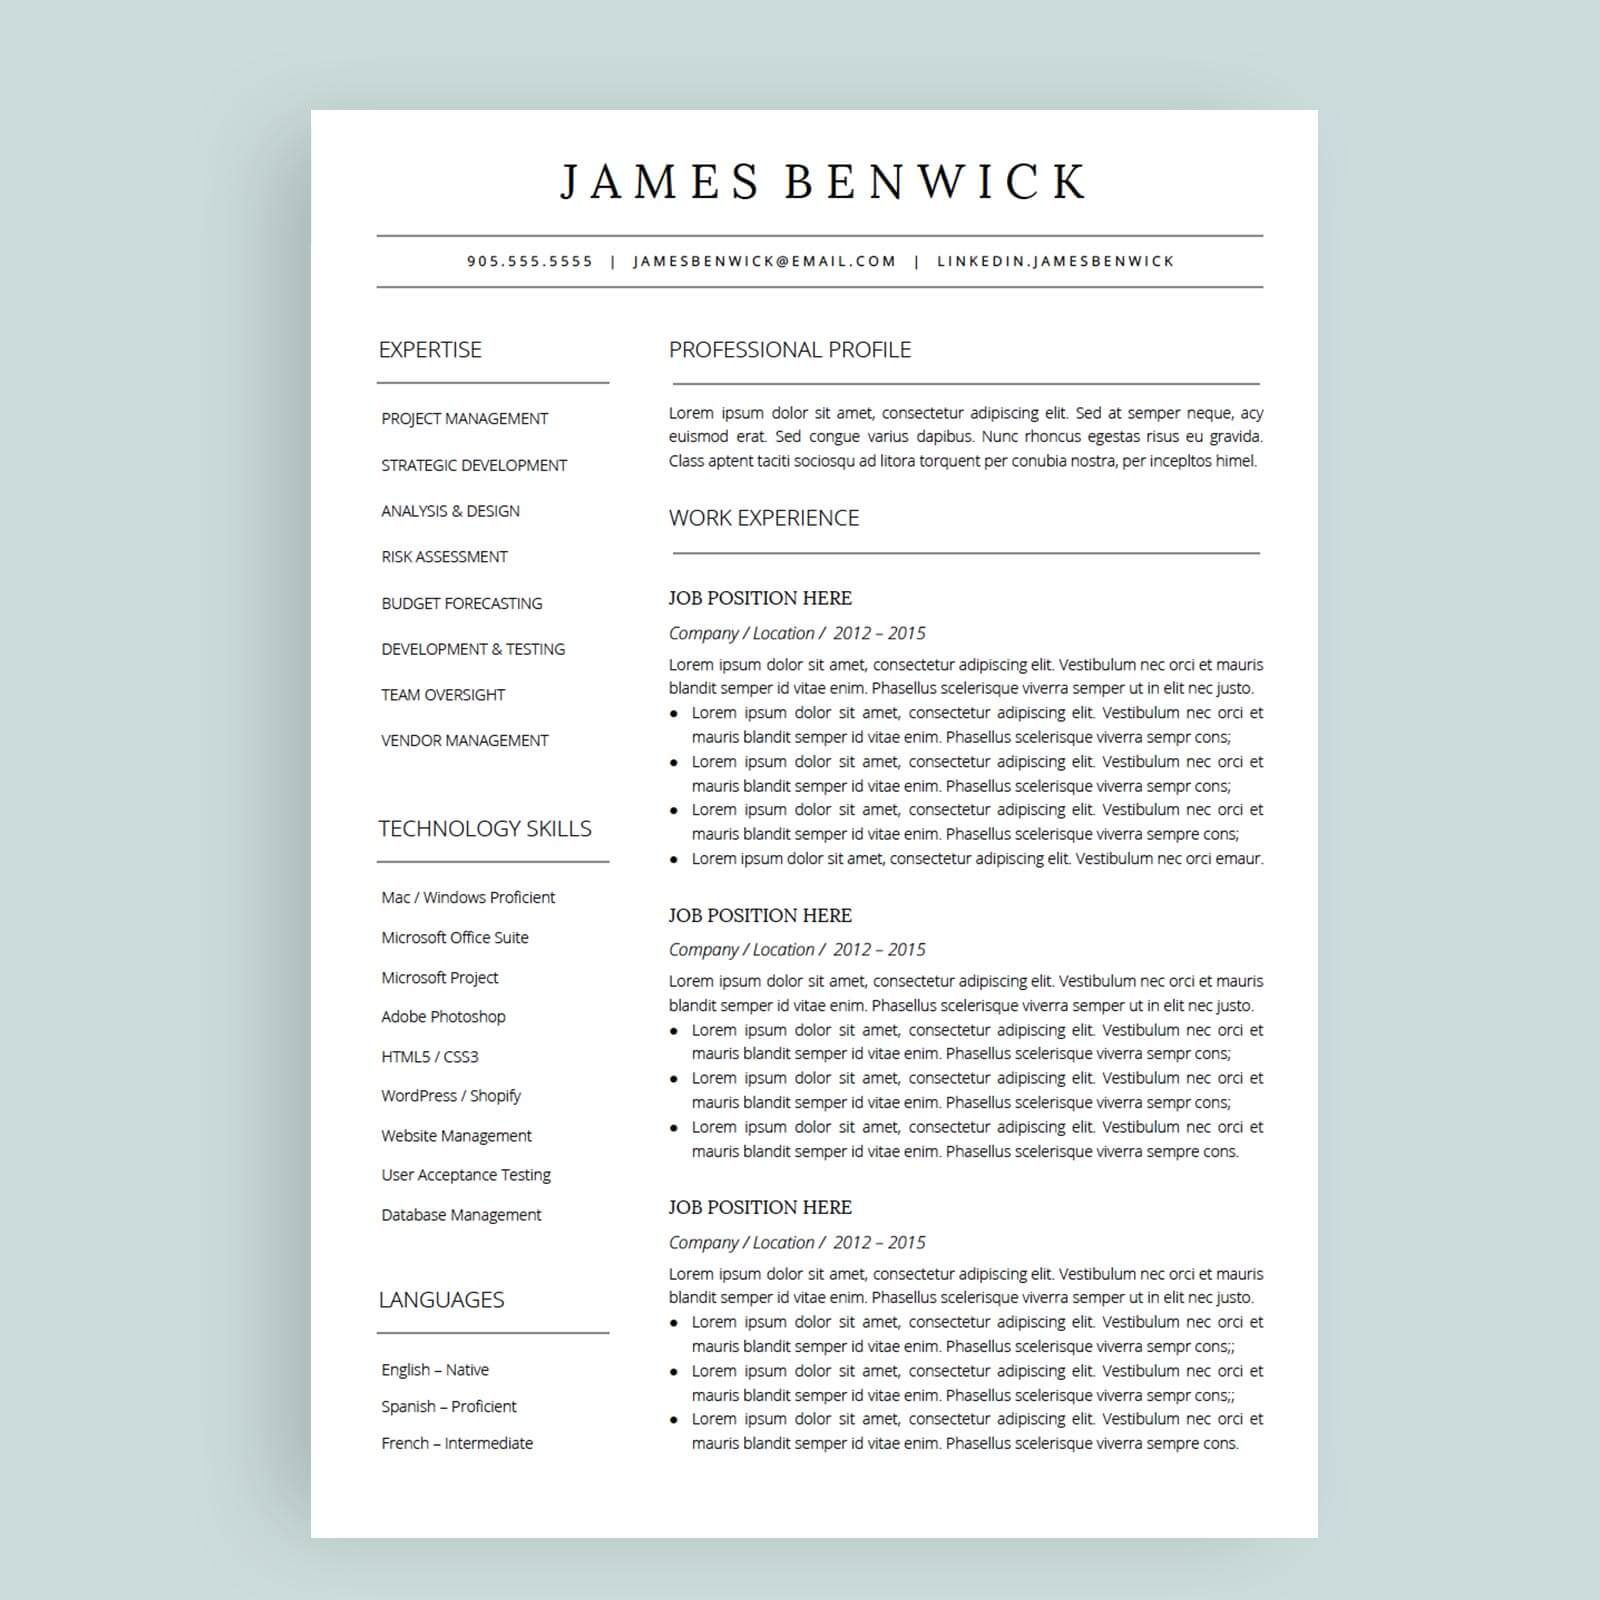 Templates For Resumes Google Docs in 2020 Resume, Resume